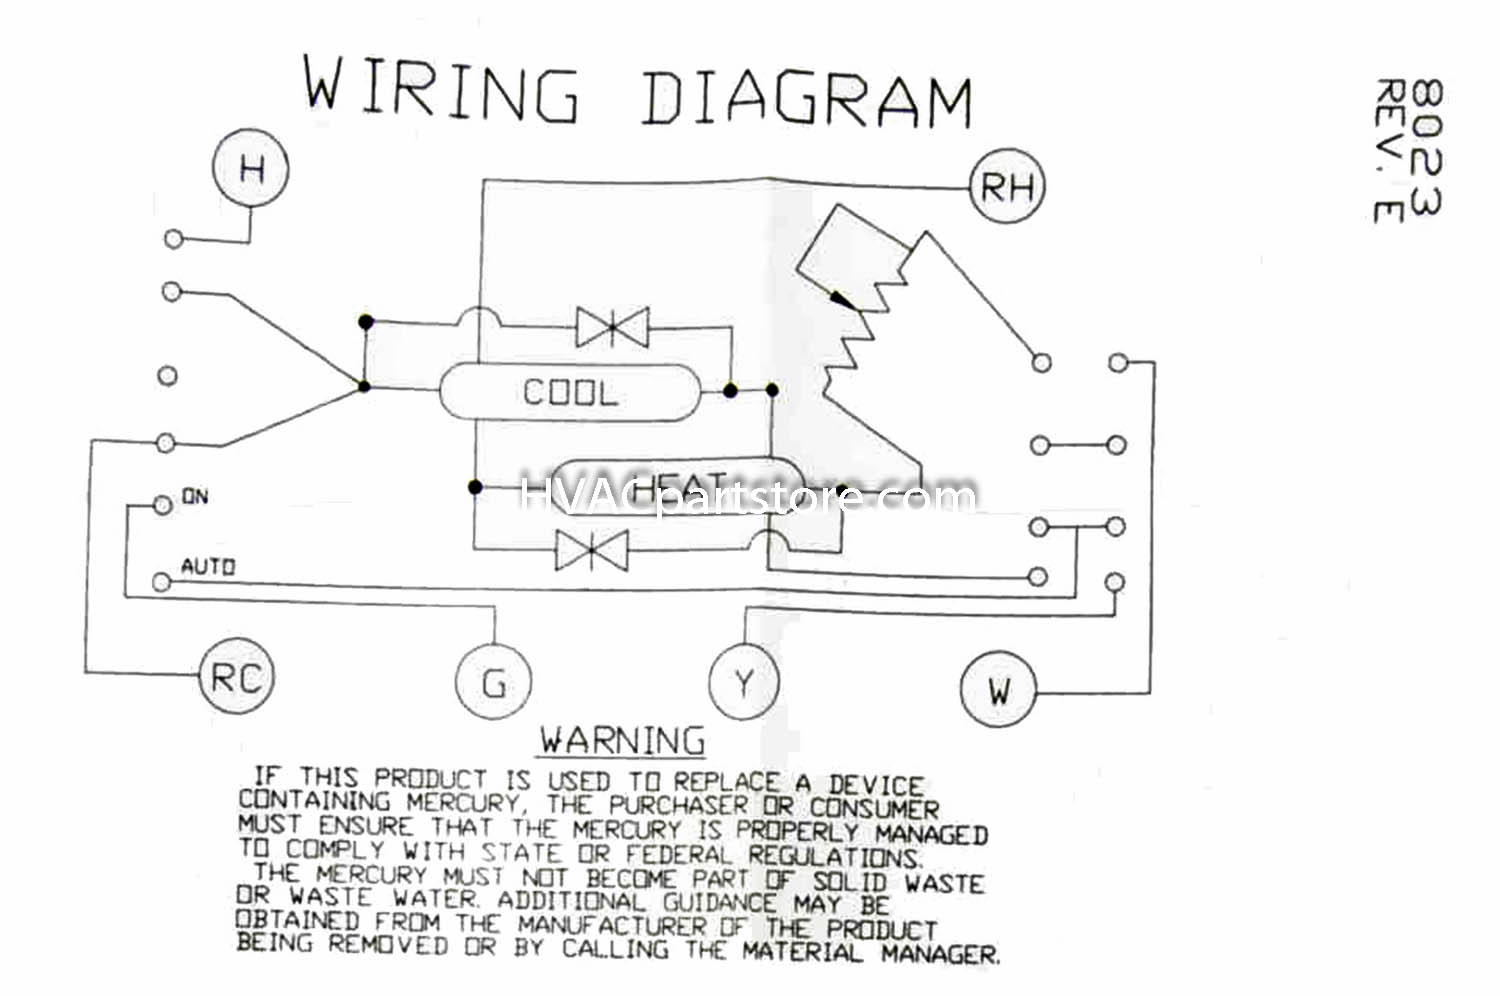 duo therm thermostat wiring diagram dometic rv thermostat wiring diagram dometic free engine duo therm thermosat wiring diagrams